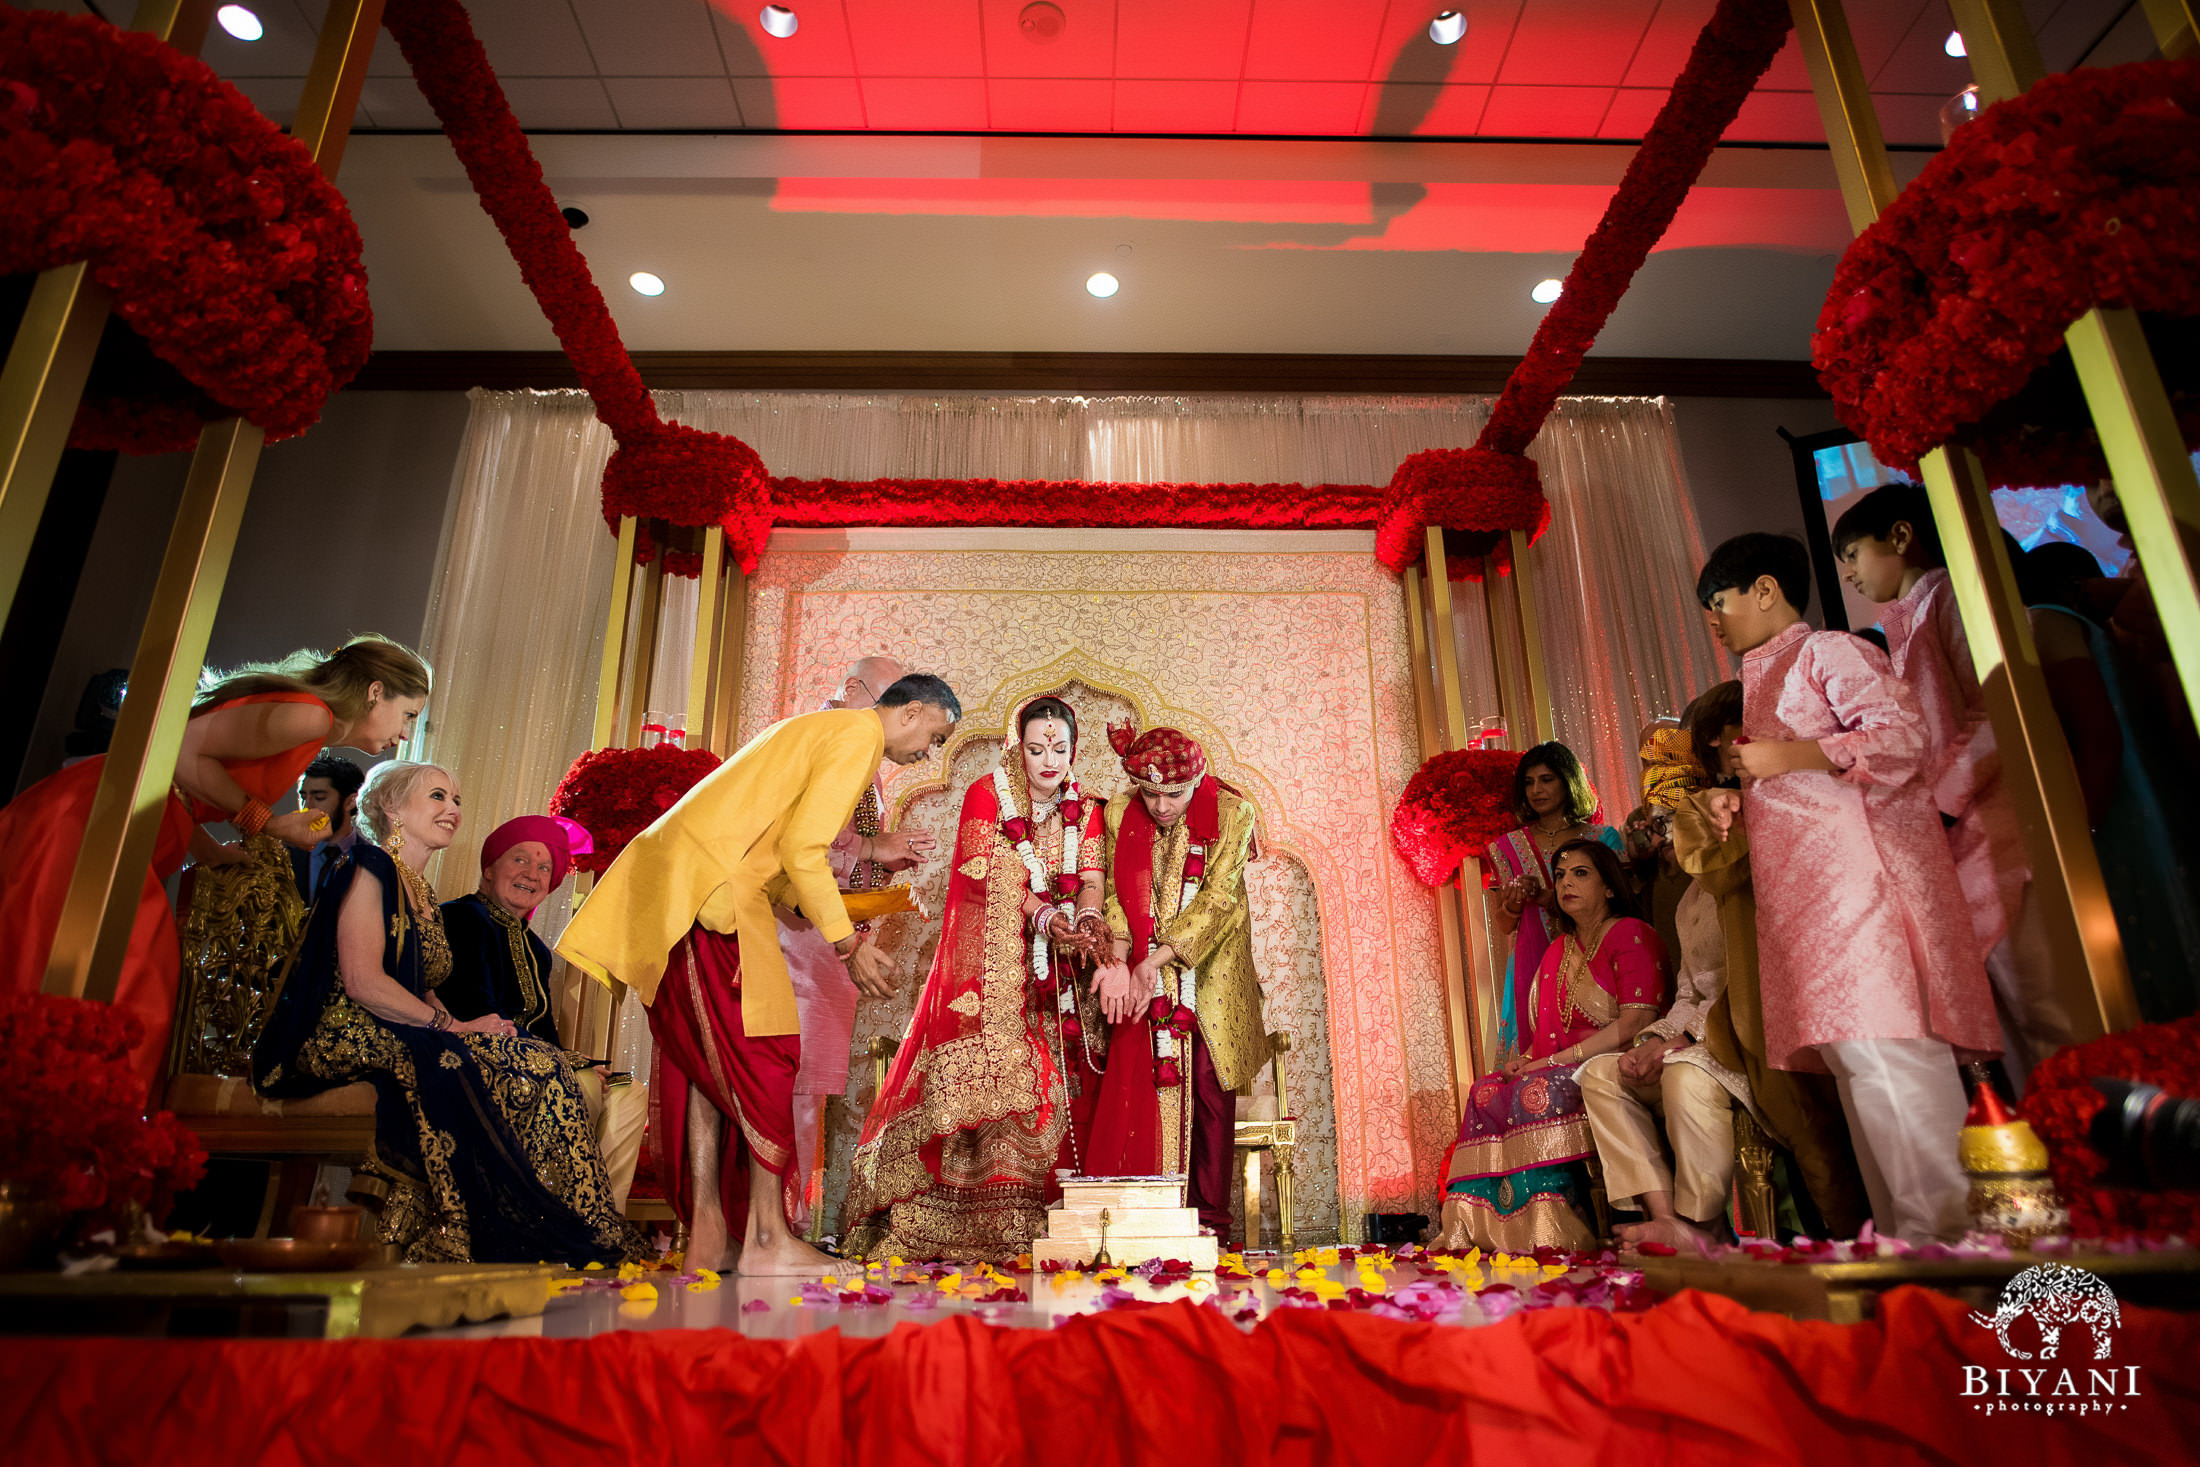 Bride and groom throw offerings into the fire